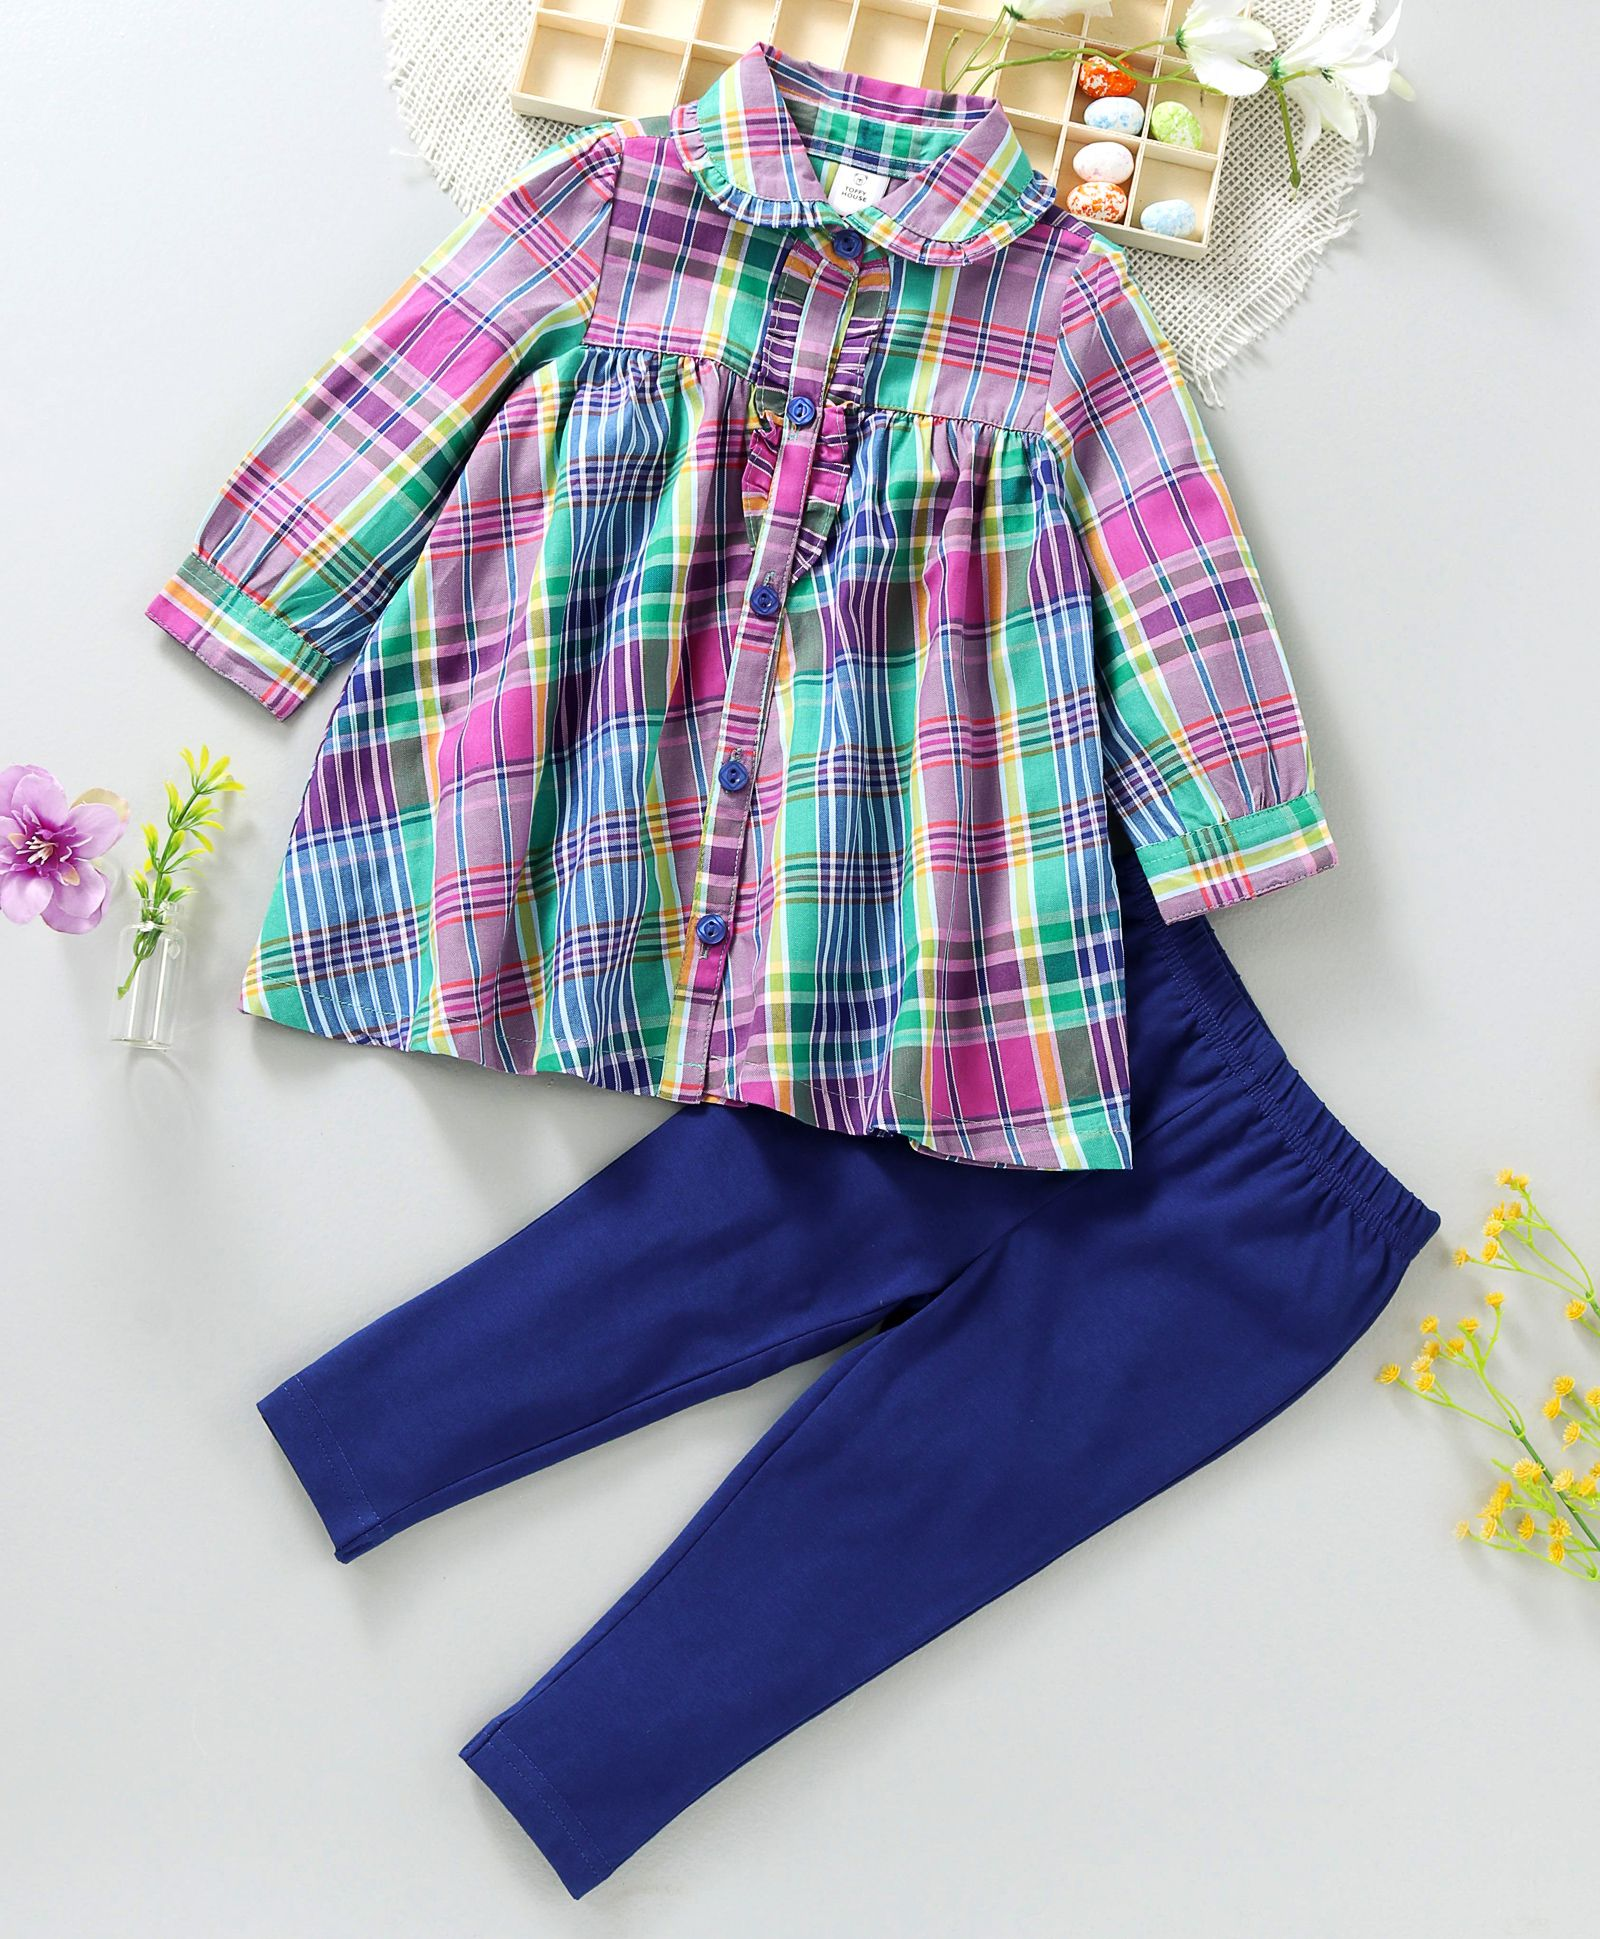 6dac95356510 Buy ToffyHouse Frock Style Top   Leggings Checked Pink Blue for ...